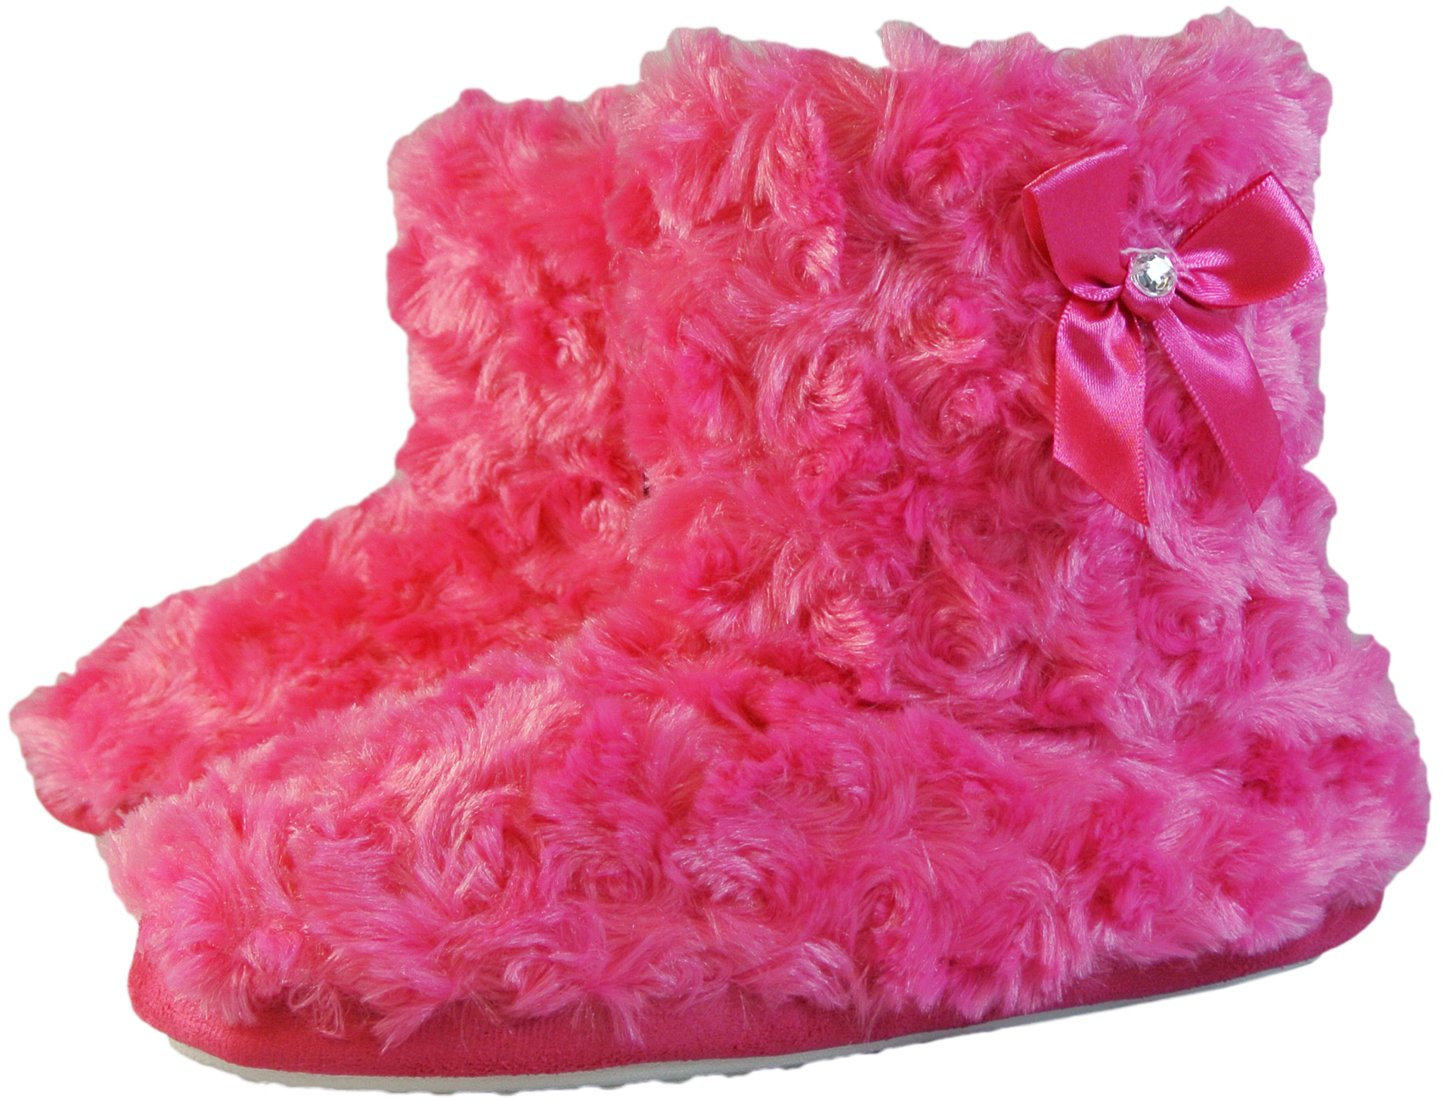 Womens House Slippers Boot Style Rose Swirl Plush with Bow